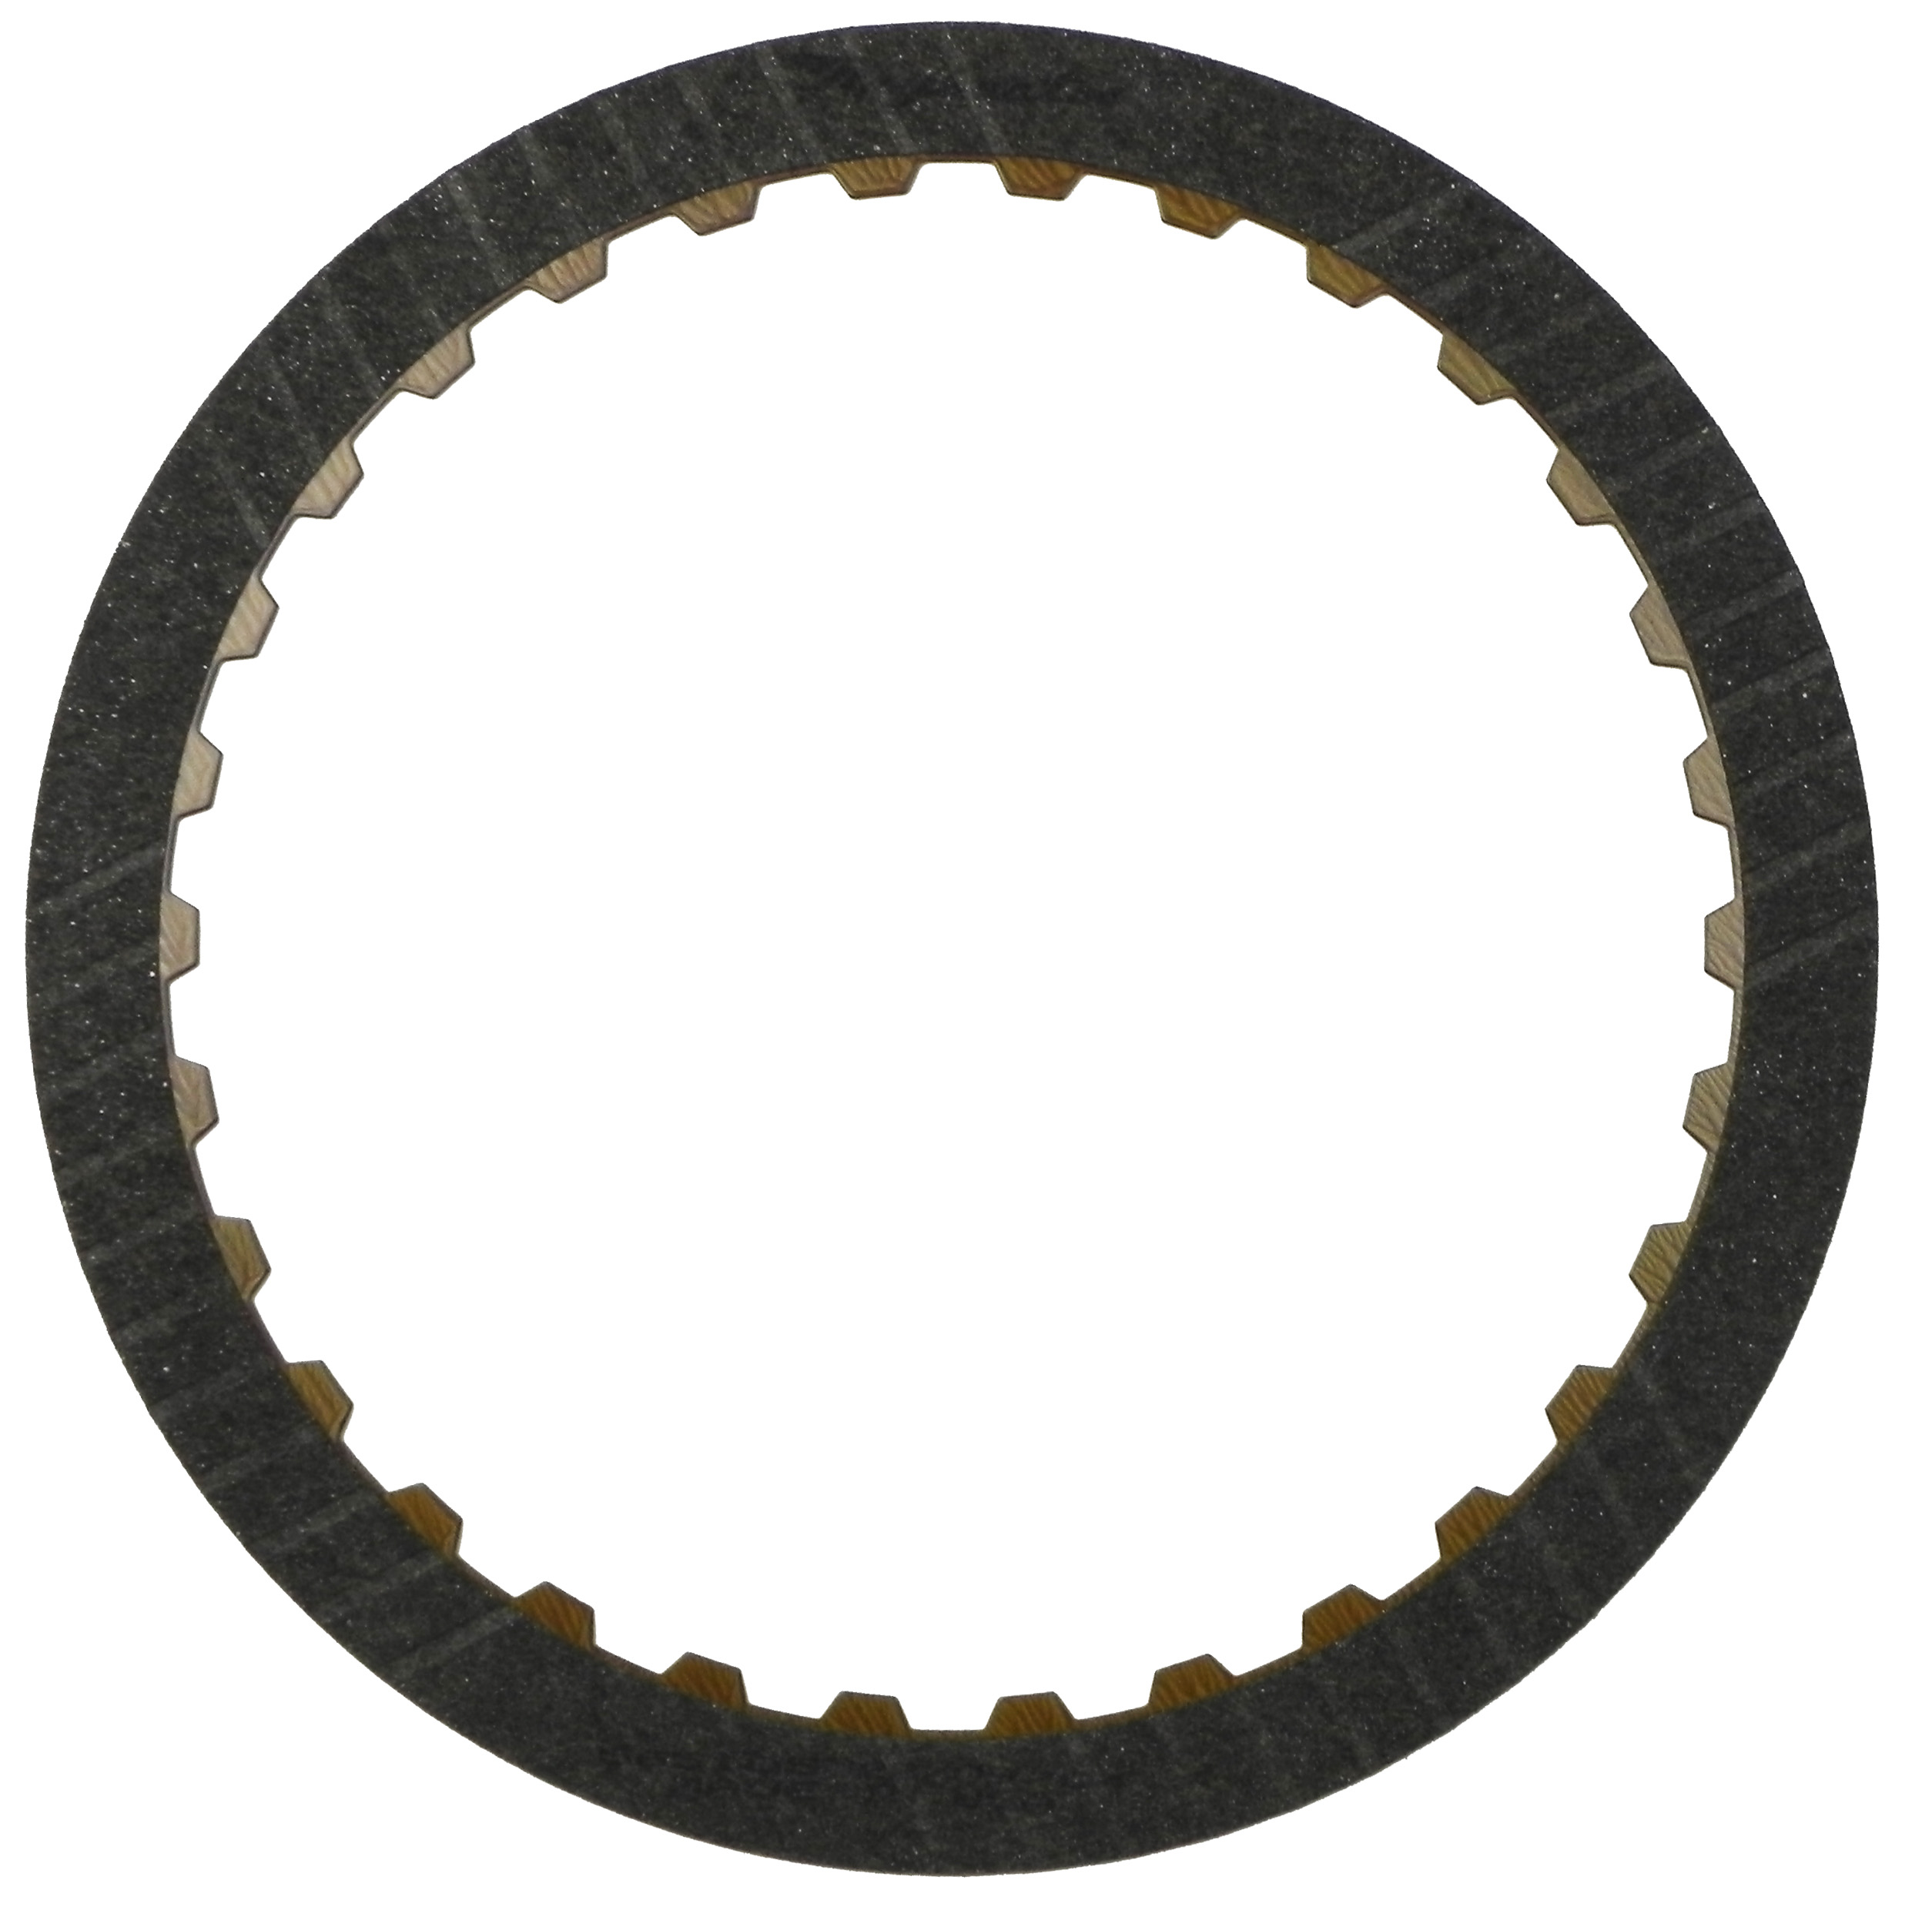 R565105 | 1997-2008 Friction Clutch Plate High Energy 2nd Brake High Energy